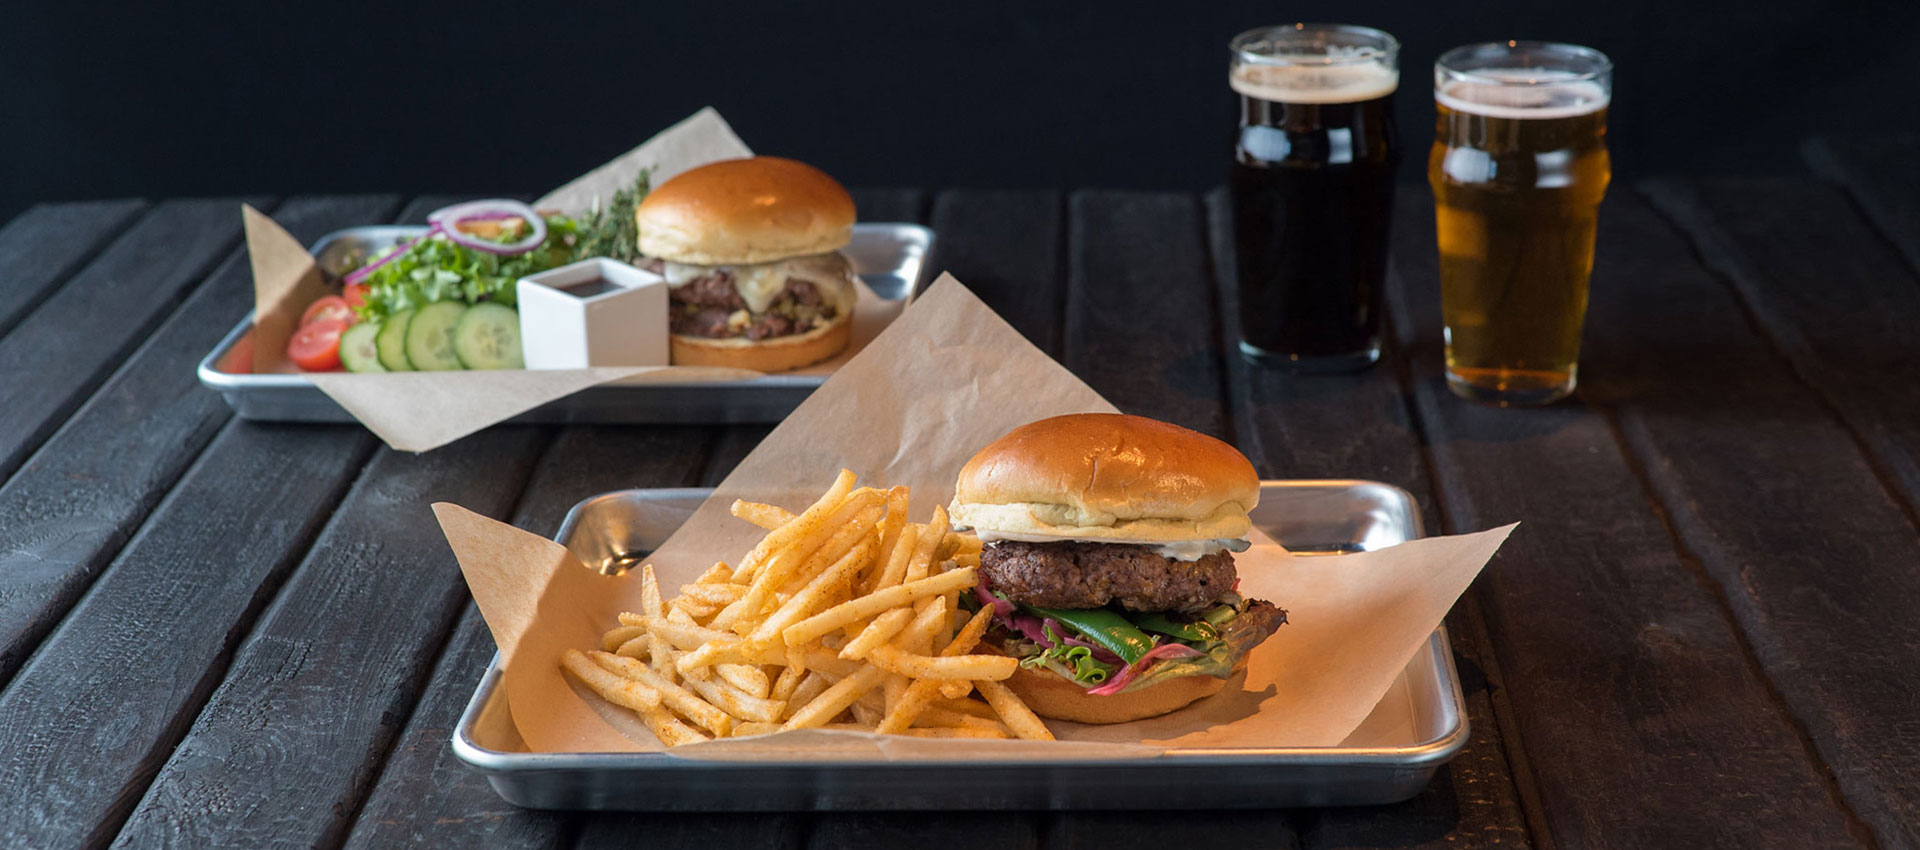 Charred - Hot Italian Beef Wagyu Burger + Chile Relleno Wagyu Burger